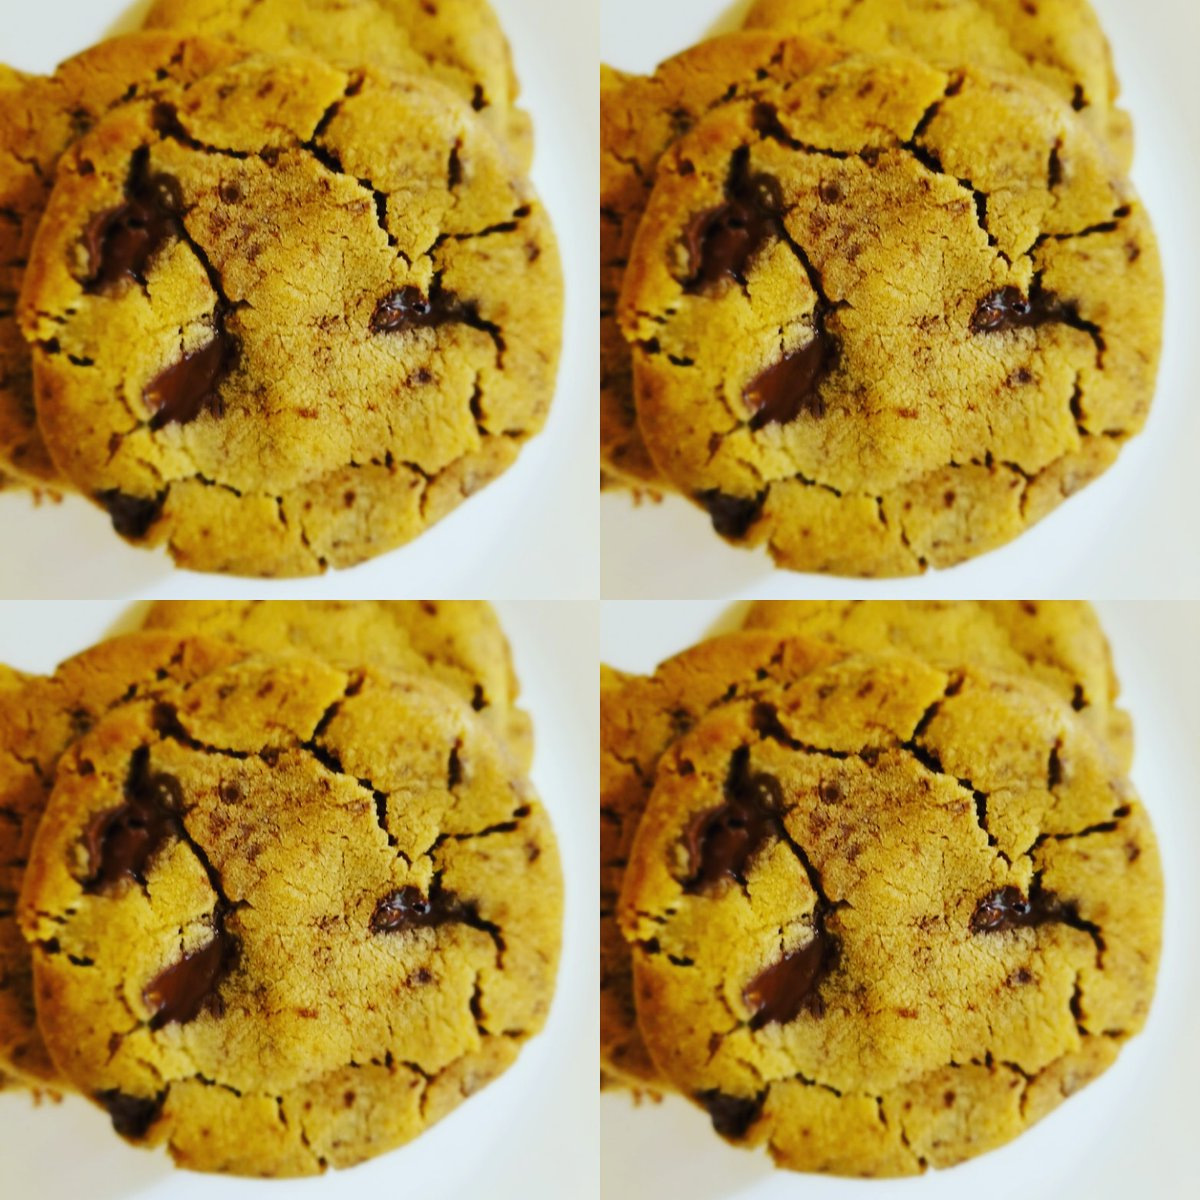 33% #DISCOUNTS DURING #CORONAVIRUS #PapaPhils  ALL #COOKIES $1  #CALL NOW & #ORDER 1-626-206-7982 Free #Delivery in #EagleRock #HighlandPark & #GlassellPark $5 for #delivery to most other areas. We use premium #malasses, vanilla beean paste & #Callebaut chocolate (55% #cacao)pic.twitter.com/uzuH8lTHhY